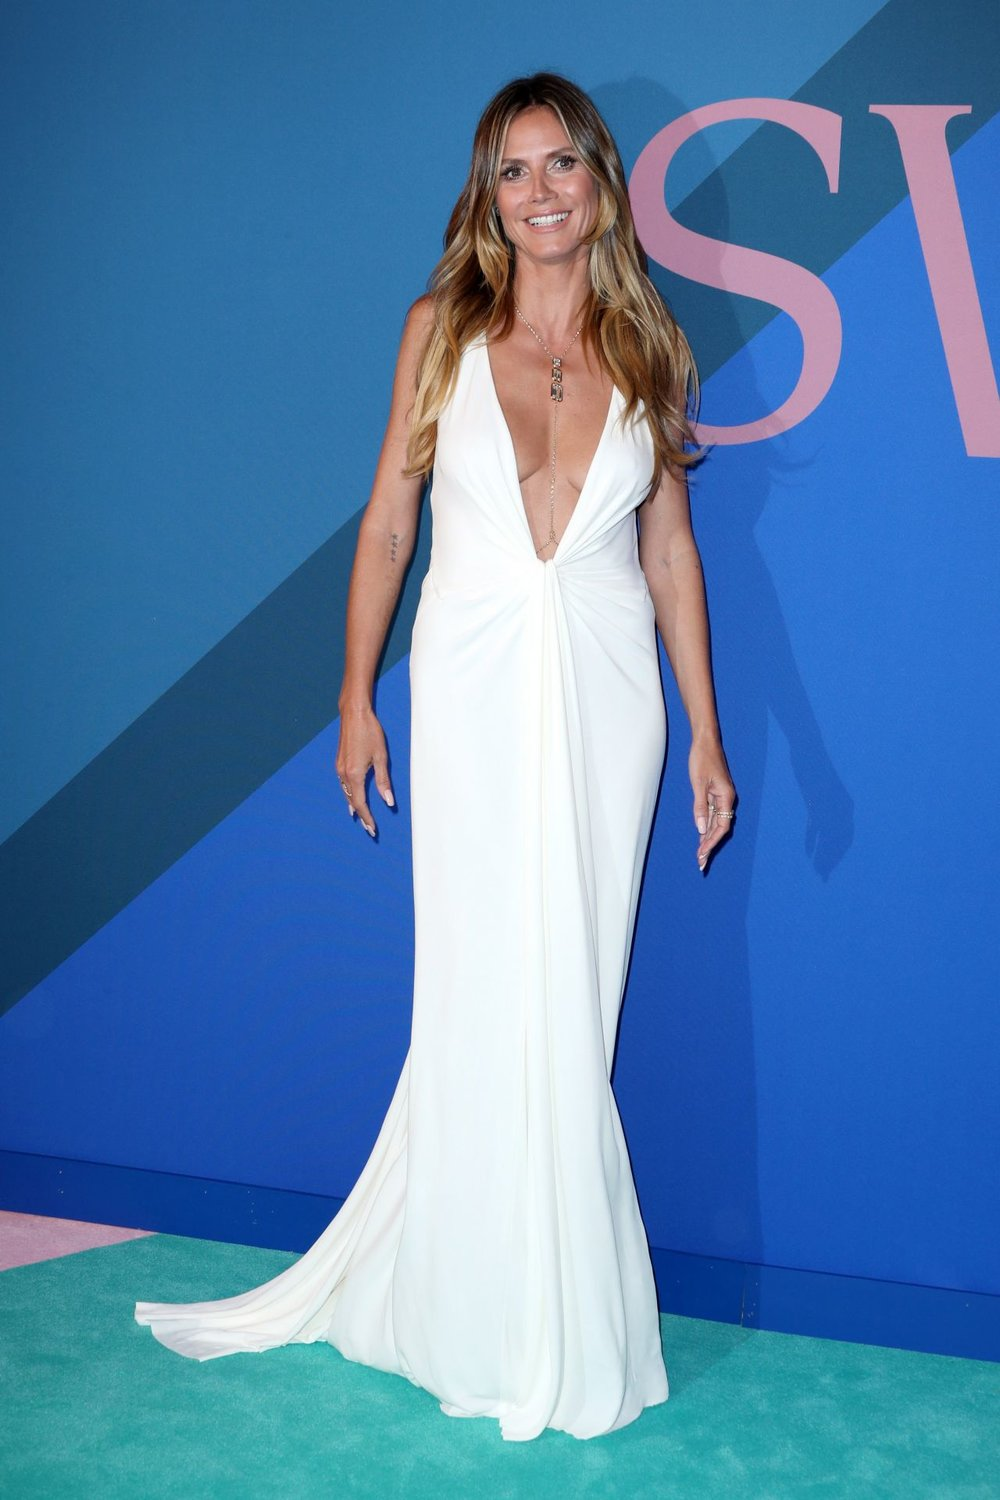 """Heidi Klum - This is also one of my favorite looks because it has a """"Greek Goddess"""" vibe to it. The plunging neckline gives this simple white dress an unique twist."""